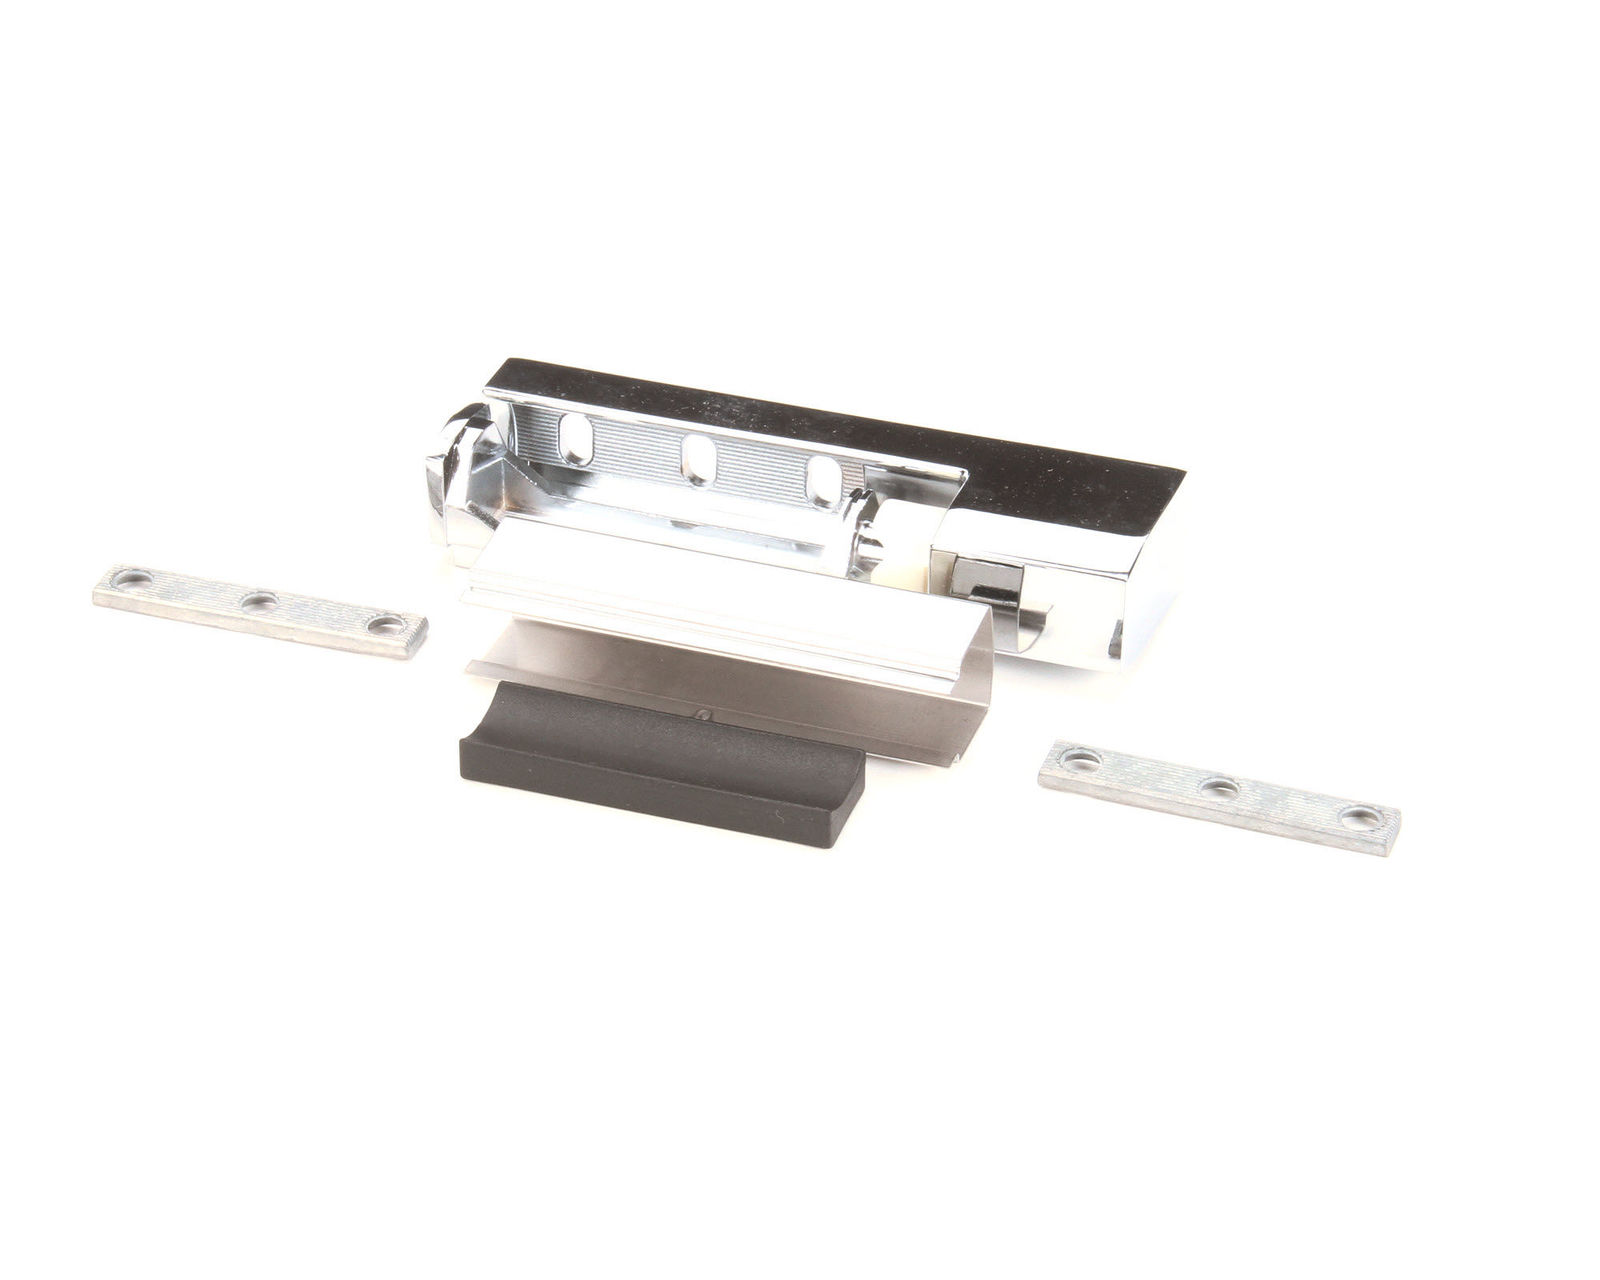 Randell HD HIN0001 Hinge Adjustable Reach-In N Ka Replacement Part Free Shipping